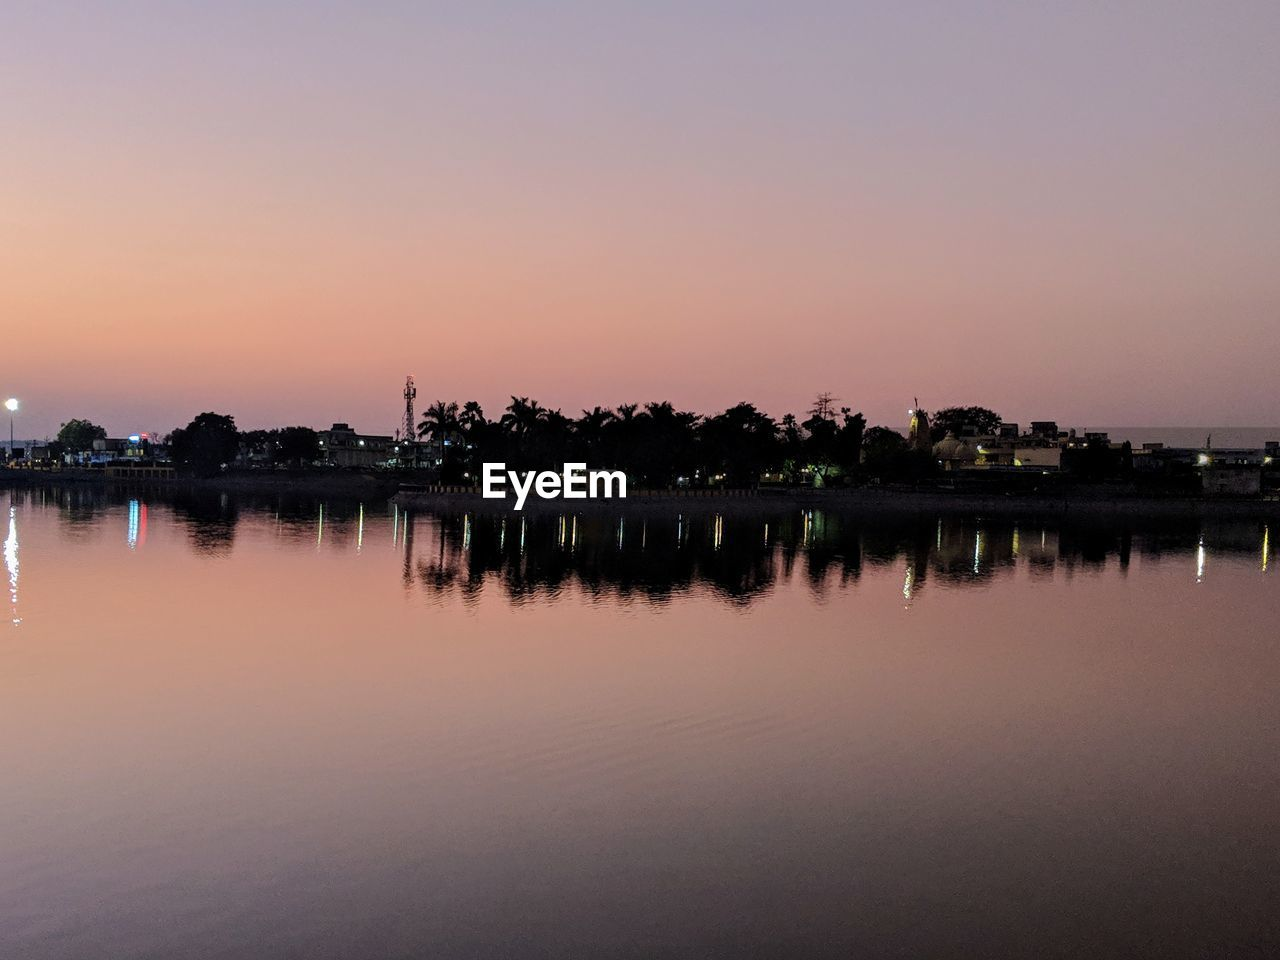 water, sky, reflection, sunset, tranquility, tranquil scene, waterfront, beauty in nature, scenics - nature, lake, orange color, nature, no people, idyllic, copy space, clear sky, outdoors, standing water, silhouette